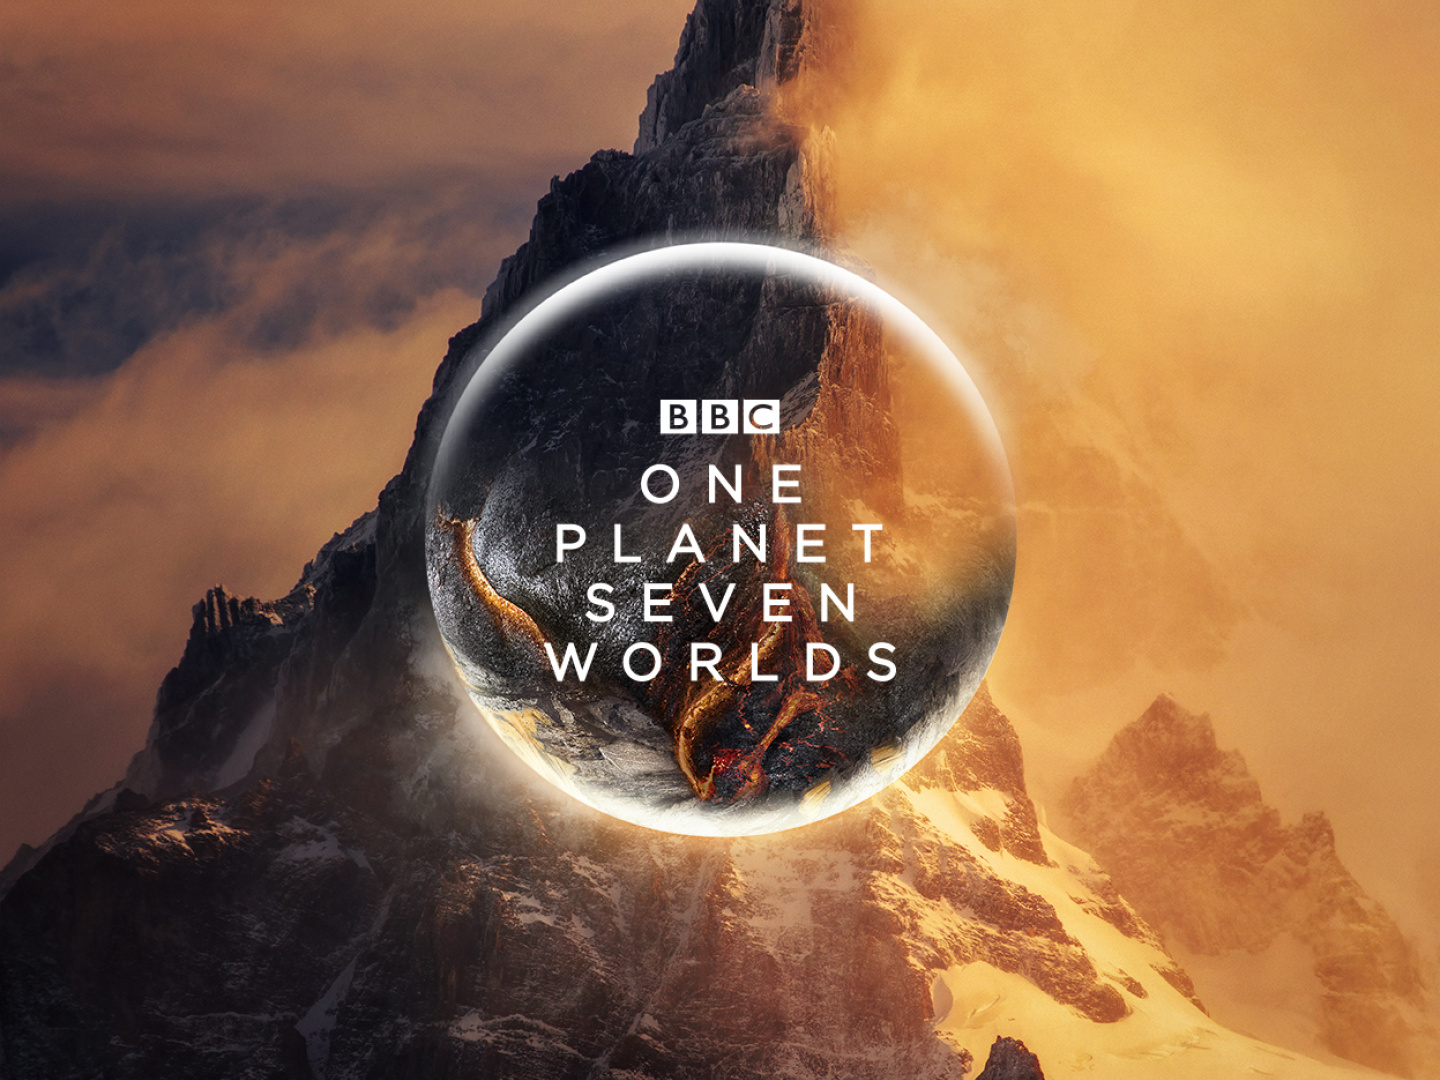 One Planets 7 worlds event Thumbnail